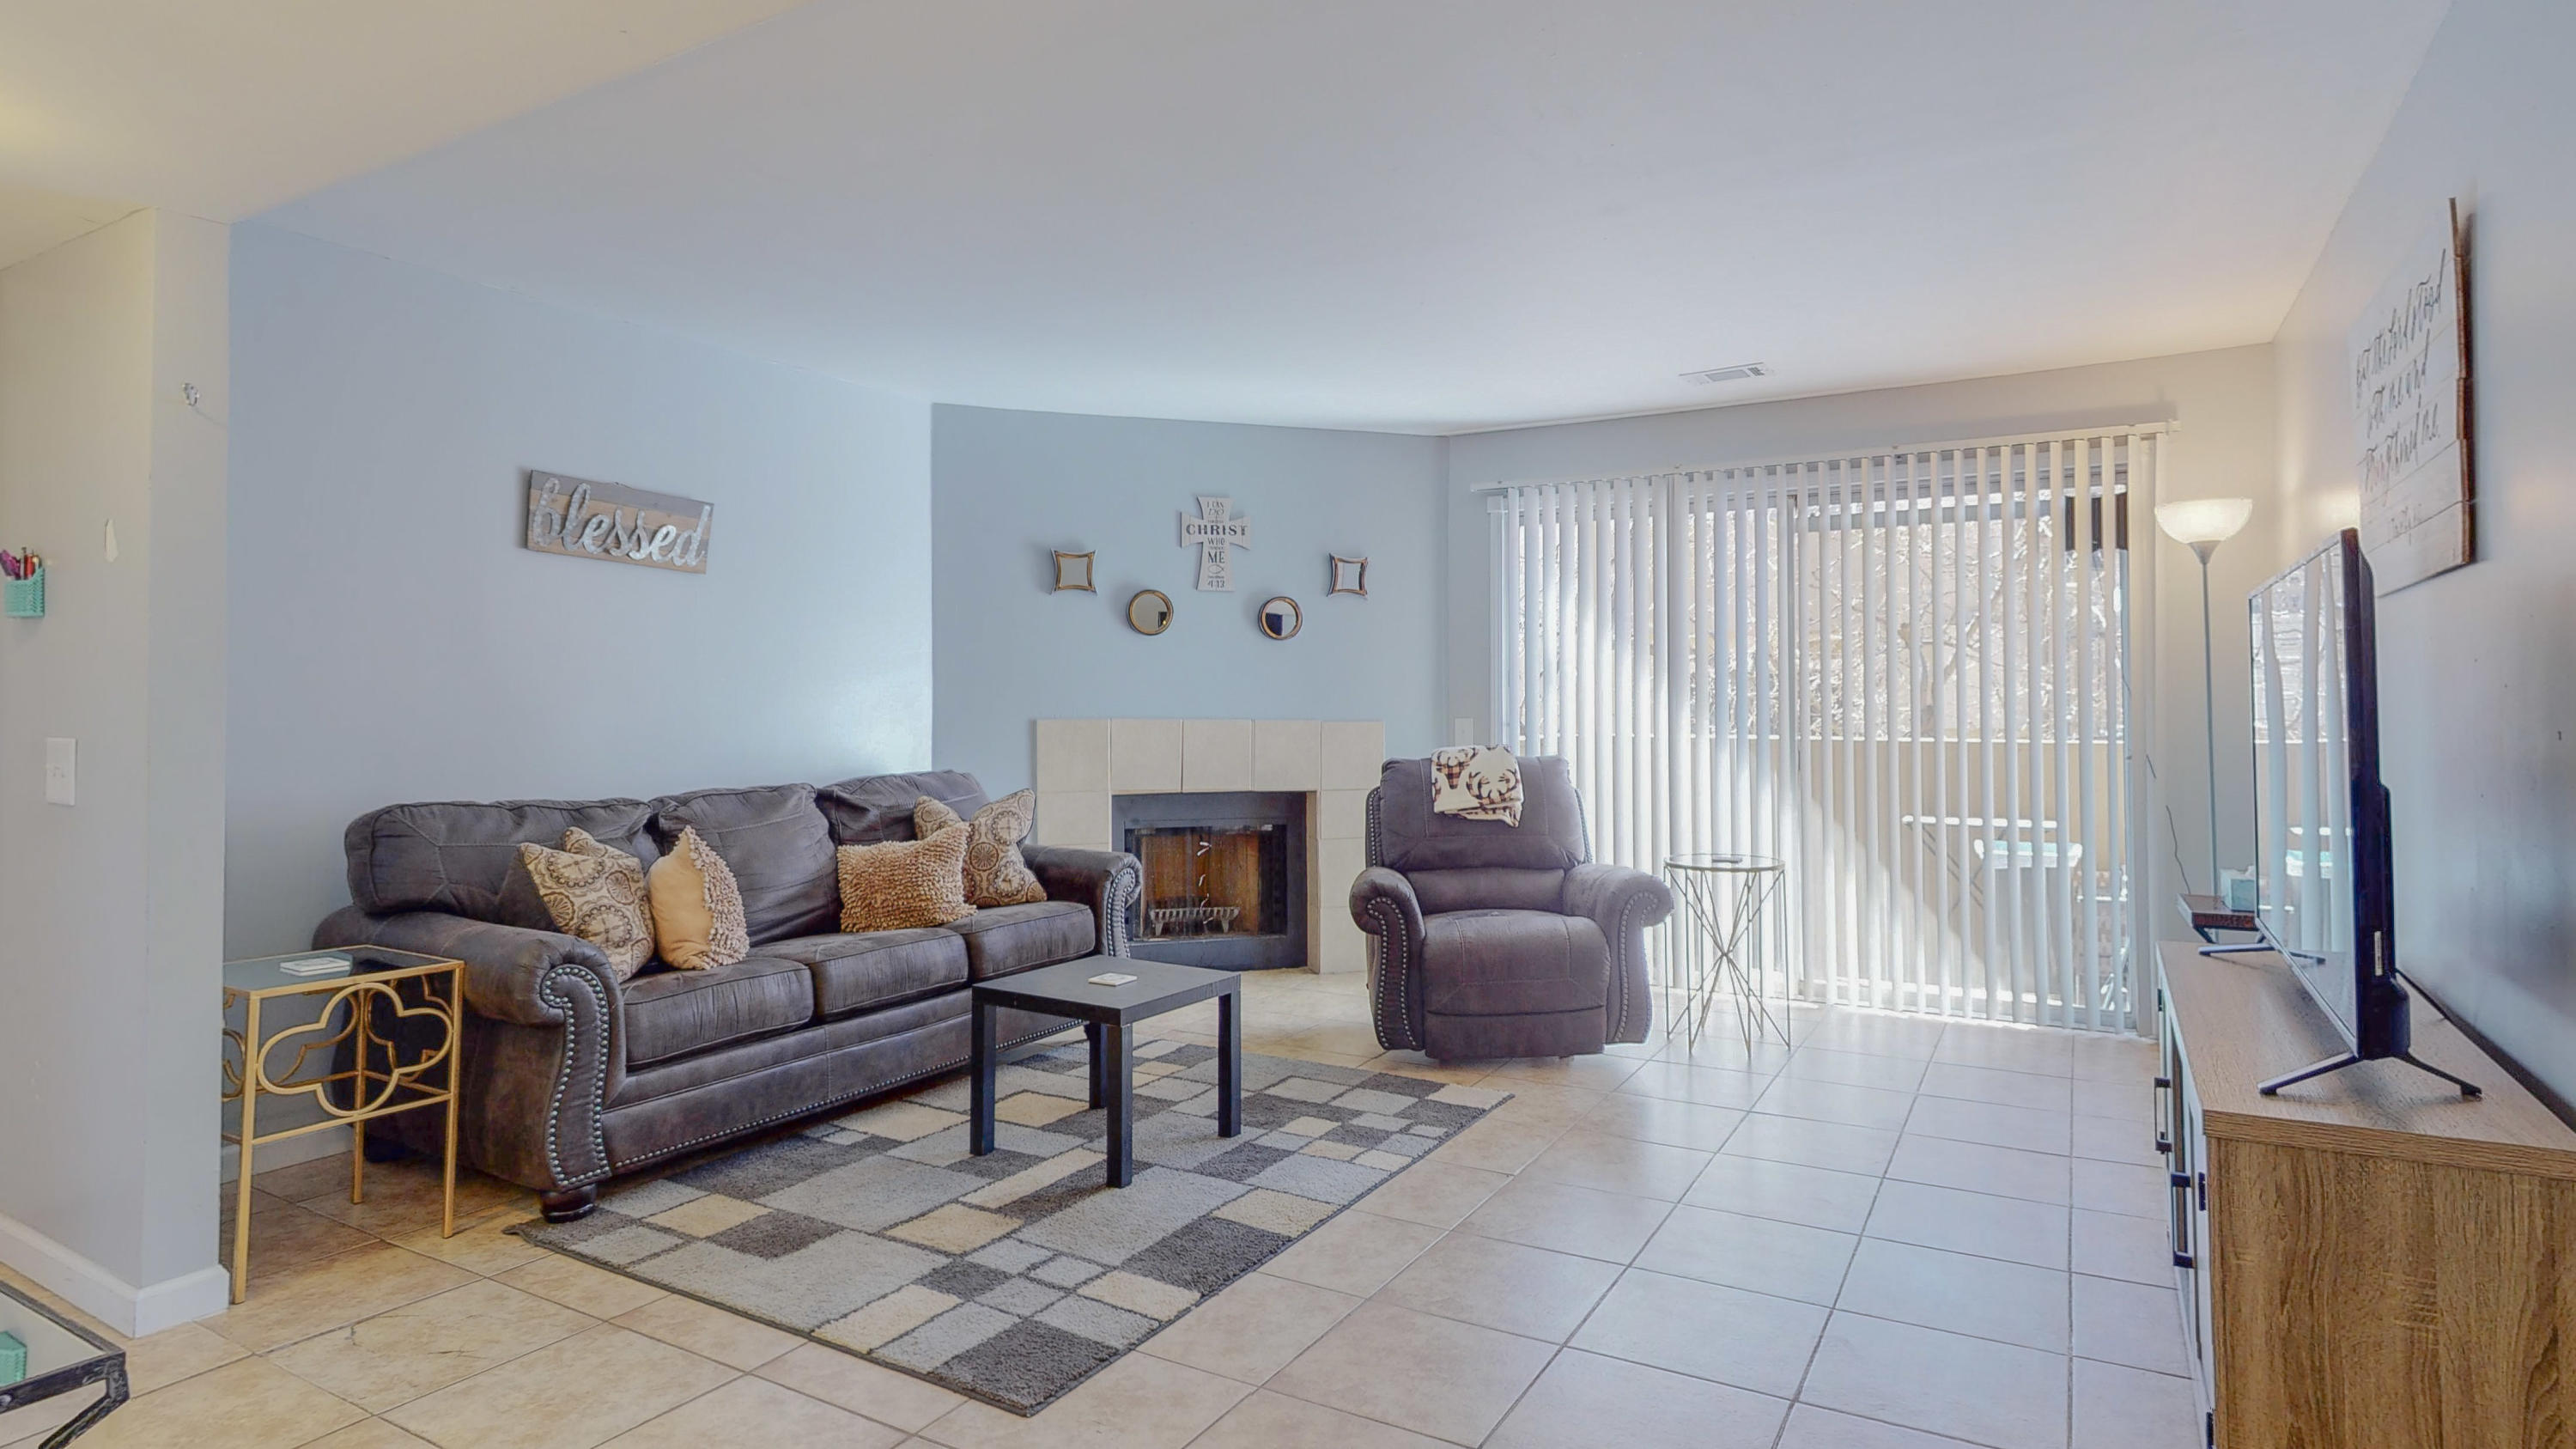 Welcome to an amazing unit in A Gated Communty with Pool and Clubhouse. Communtiy offers Security patrol, two parking spaces, and Common area. This one bedroom one bath boasts of a open living space with a wood burning fireplace!